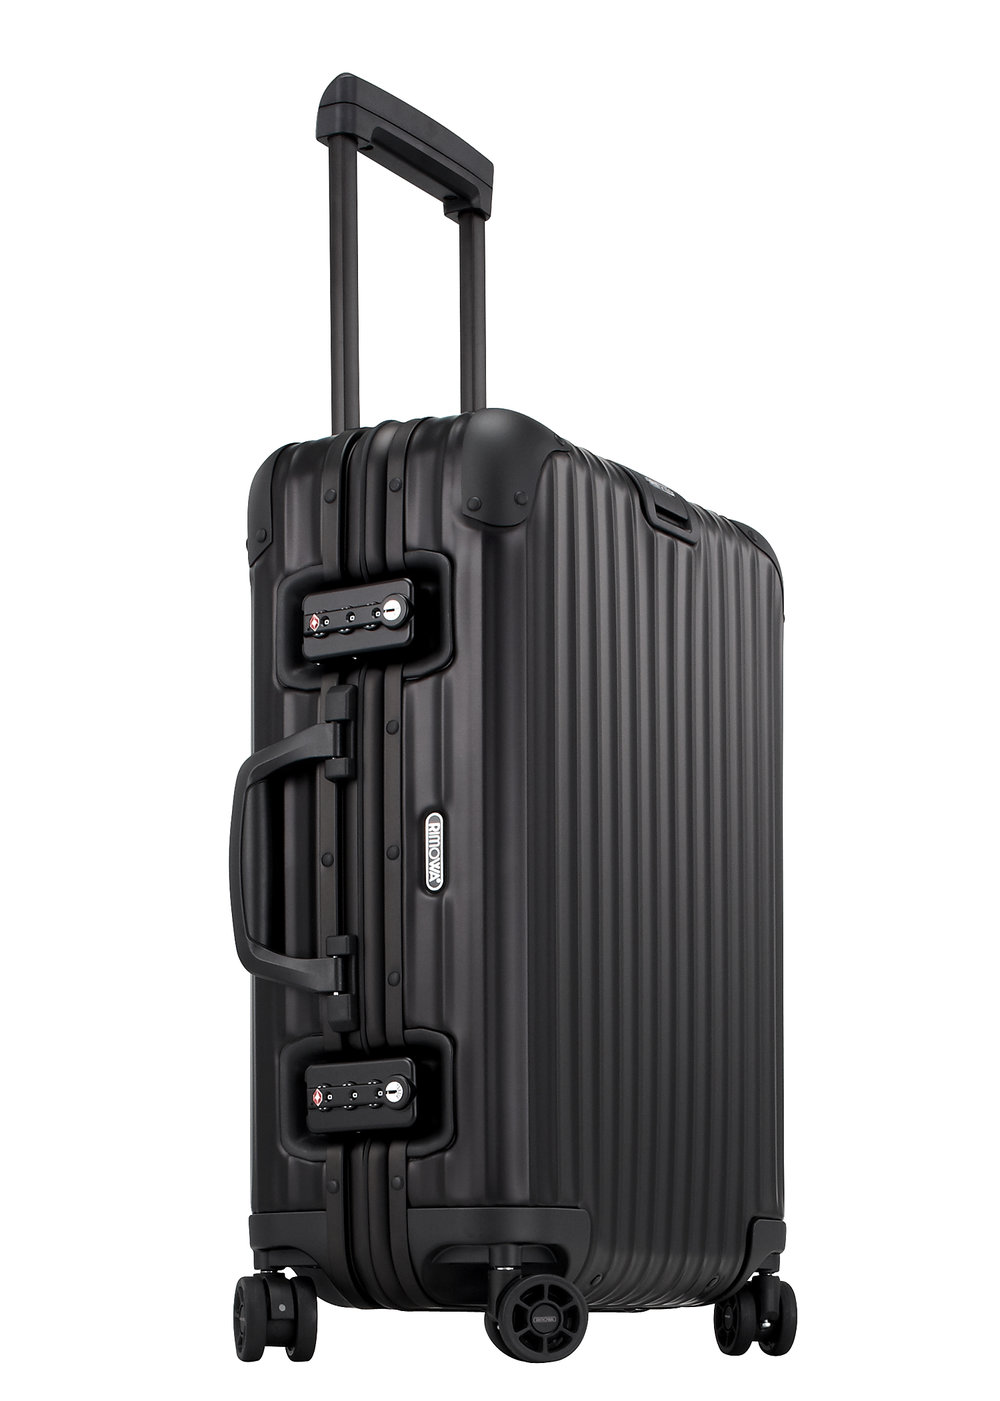 rimowa 920.52.01.4 Side.jpg